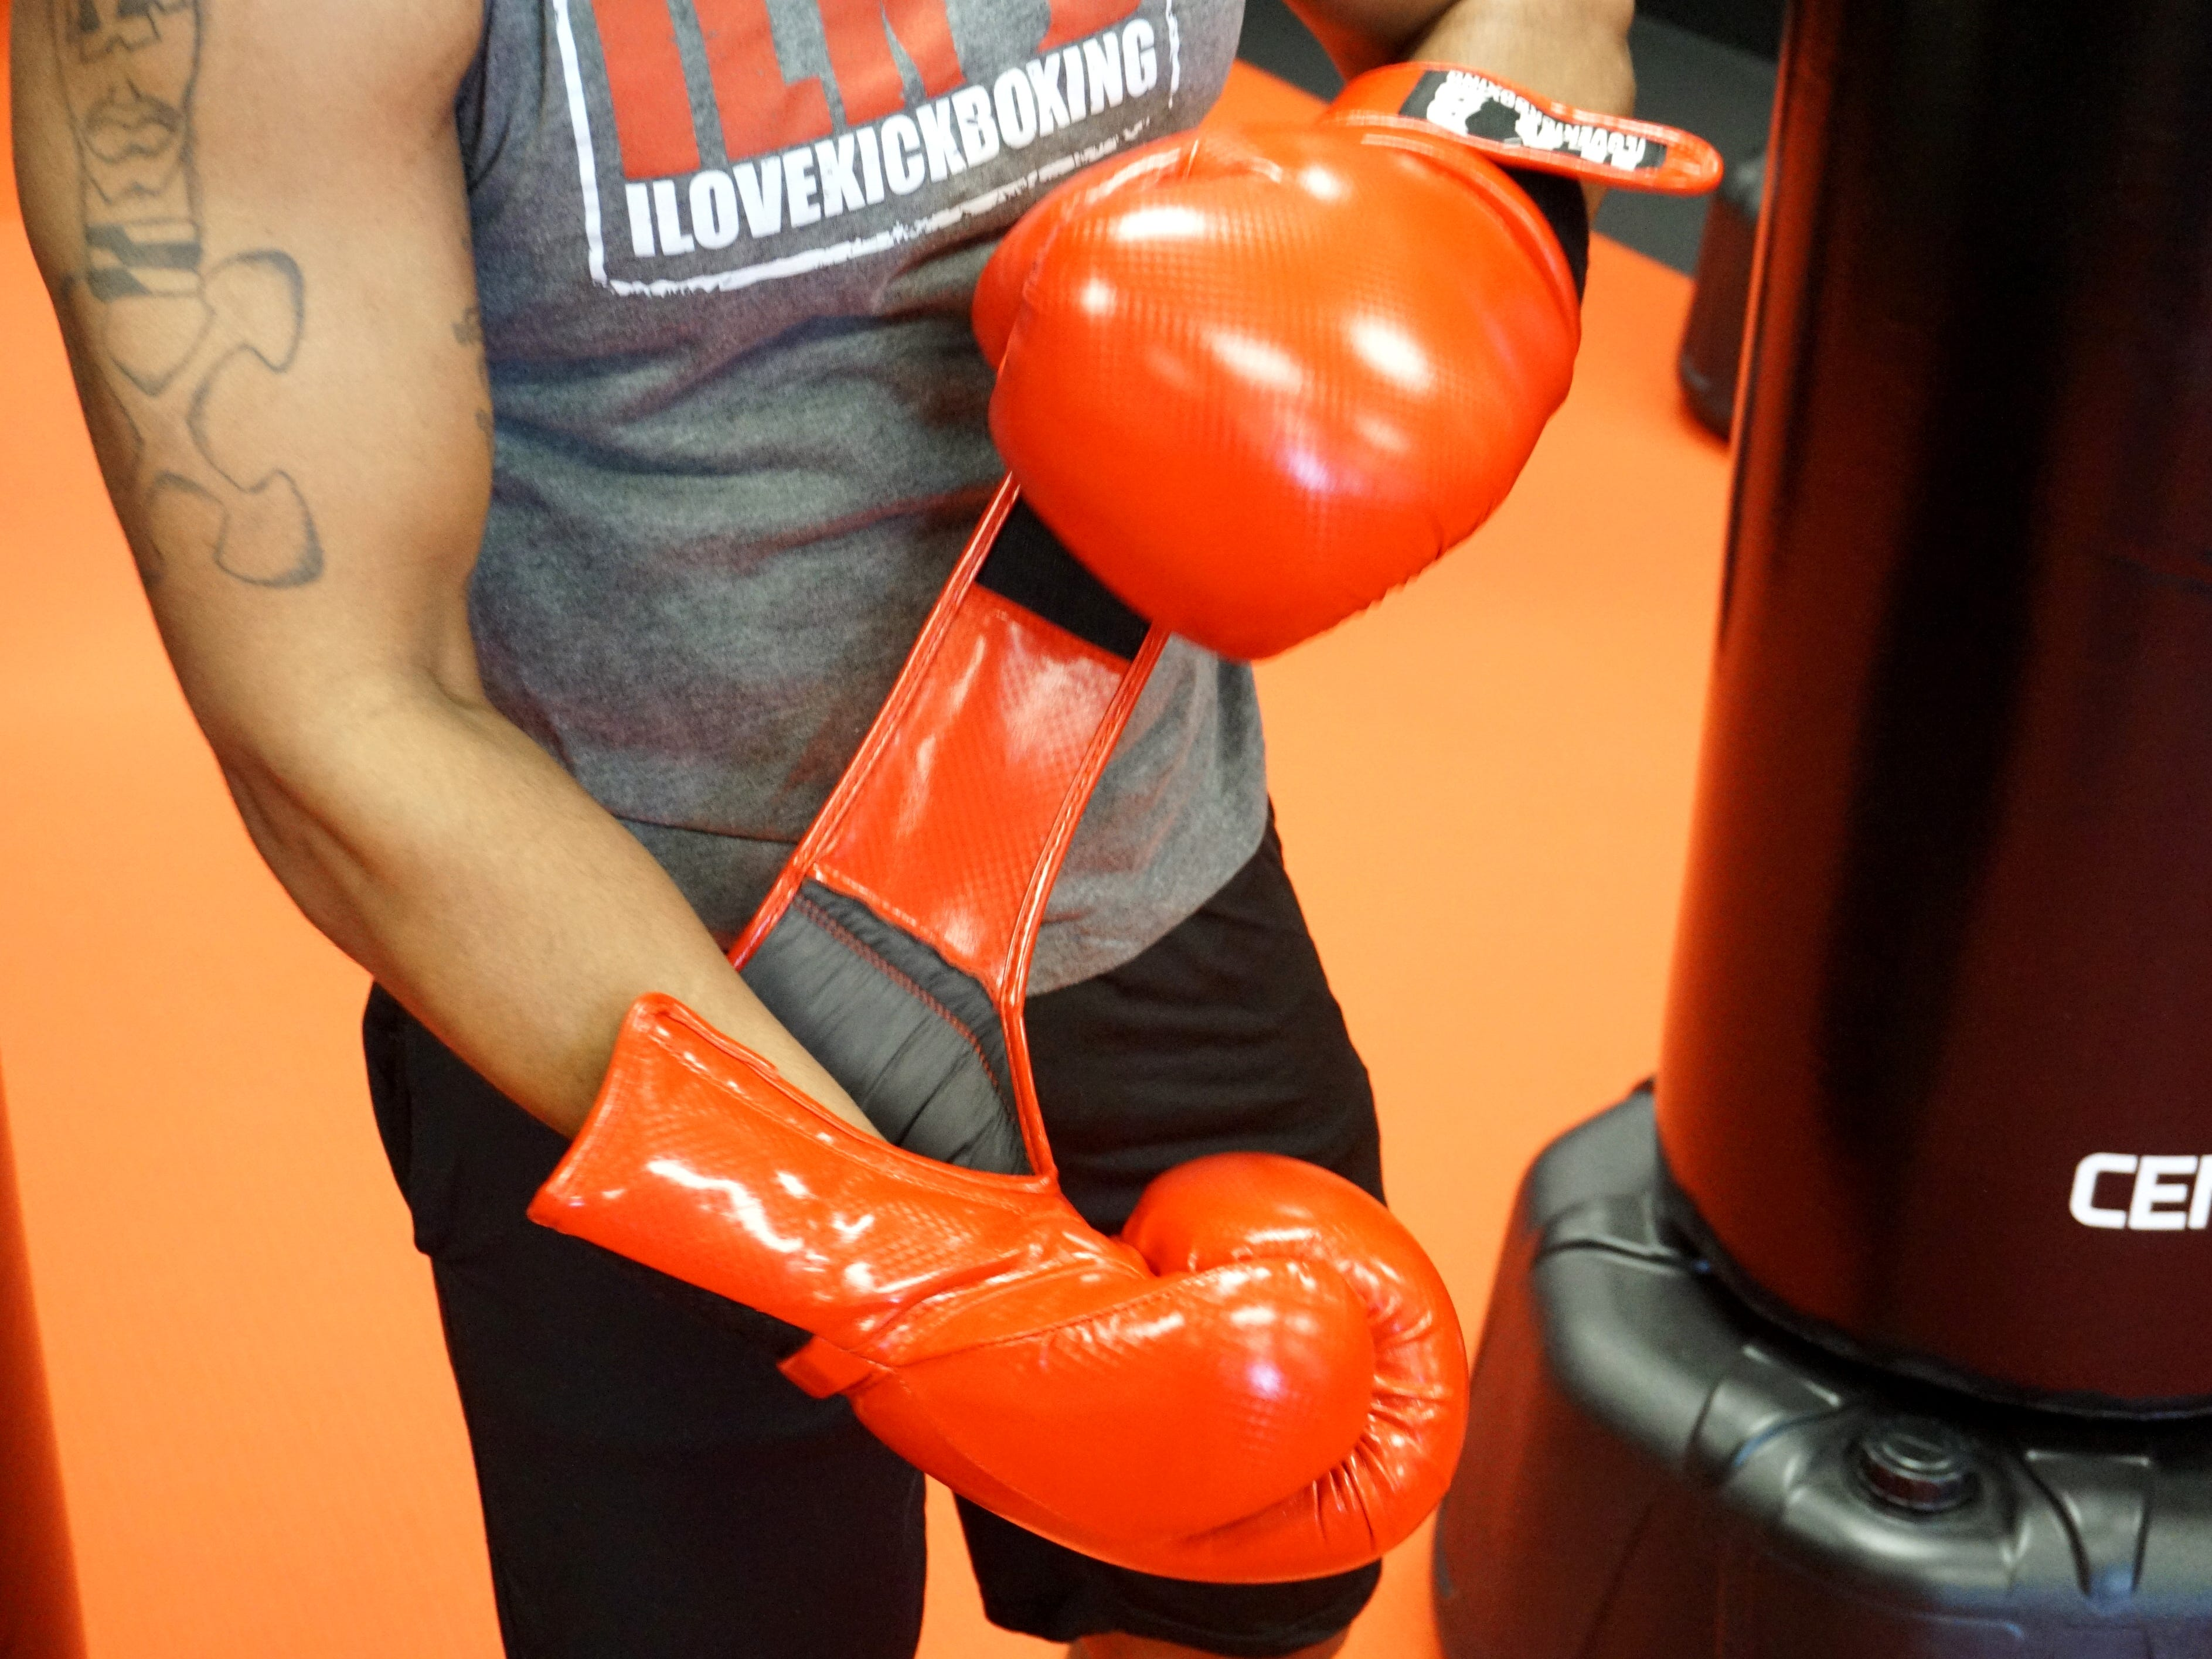 Antonio Green puts his boxing gloves on at the start of a workout. I Love Kickboxing offers an introductory series of three lessons along with boxing gloves for $19.99.